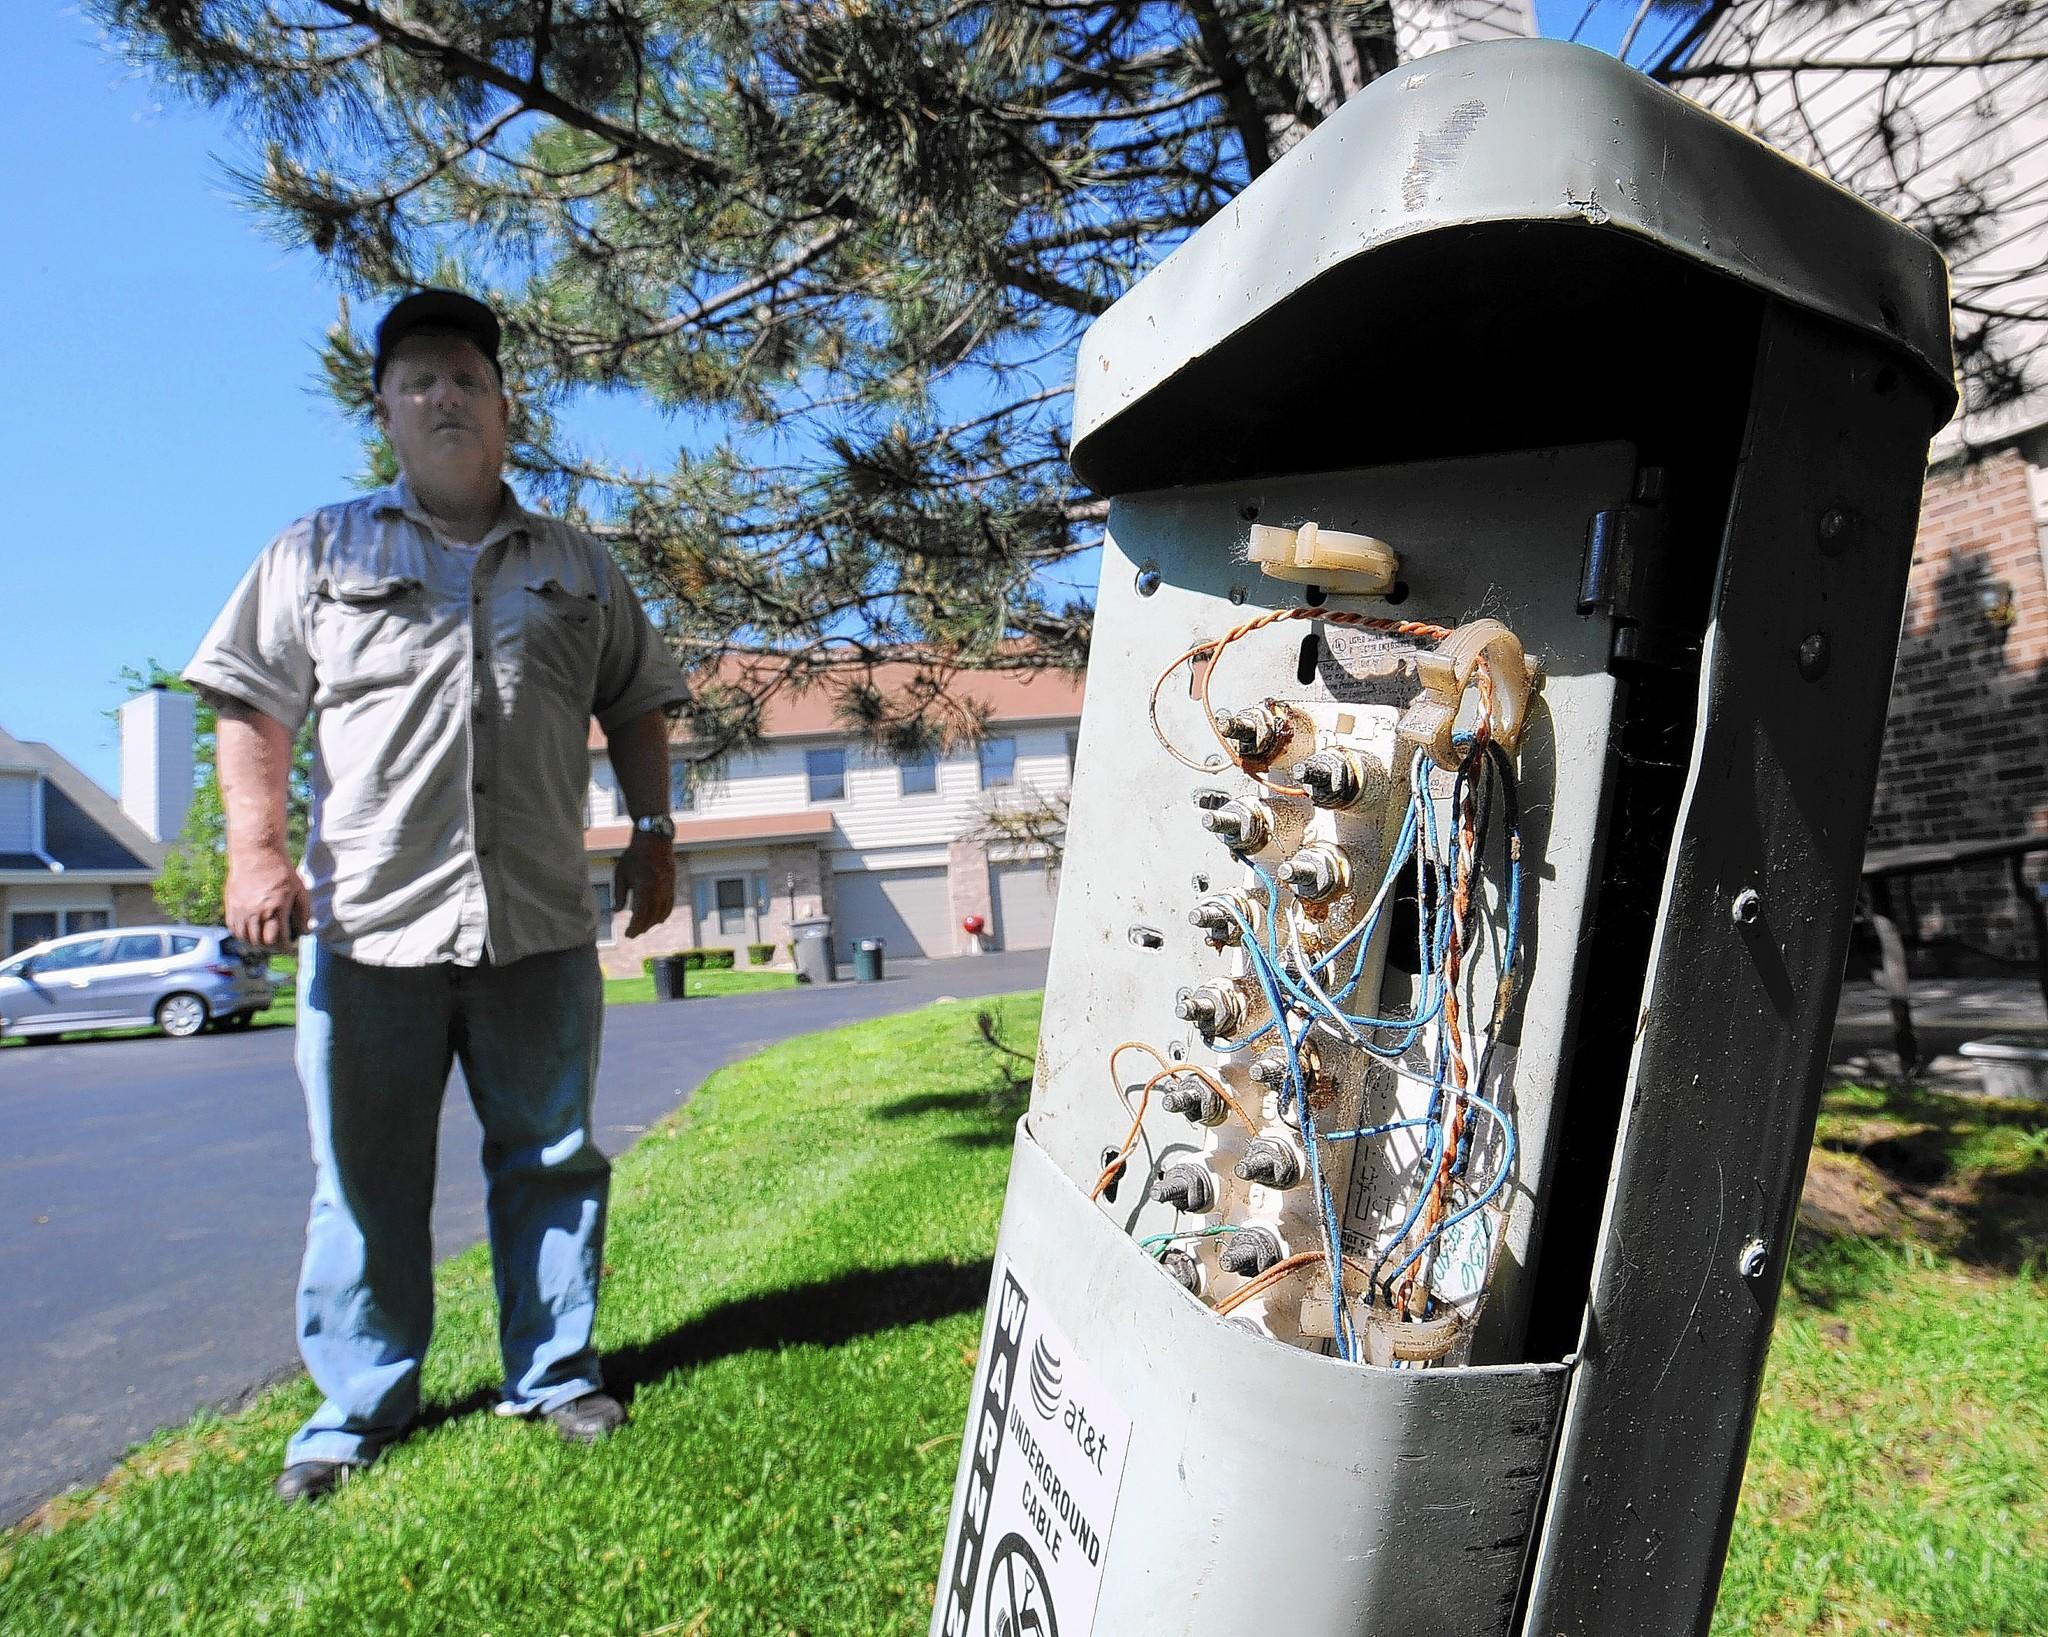 Robert Donahue says he had trouble getting AT&T to fix three utility boxes with exposed wires near the Orland Park condominium complex where he lives.